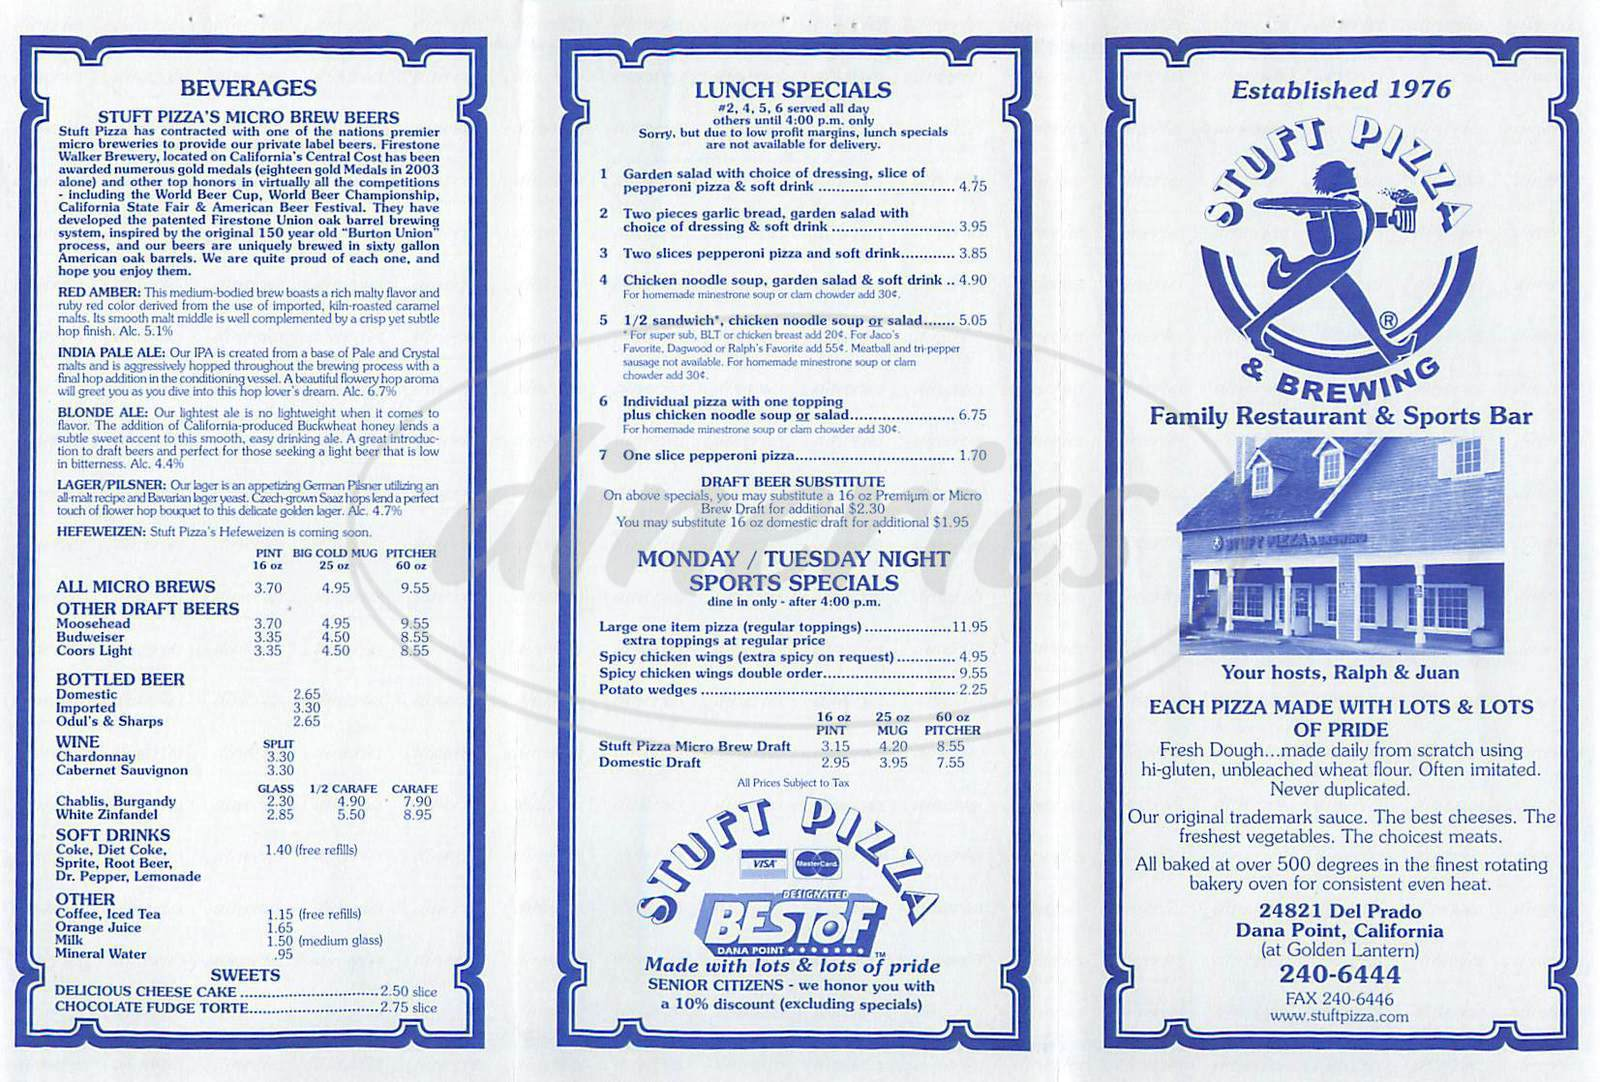 menu for Stuft Pizza & Brewing